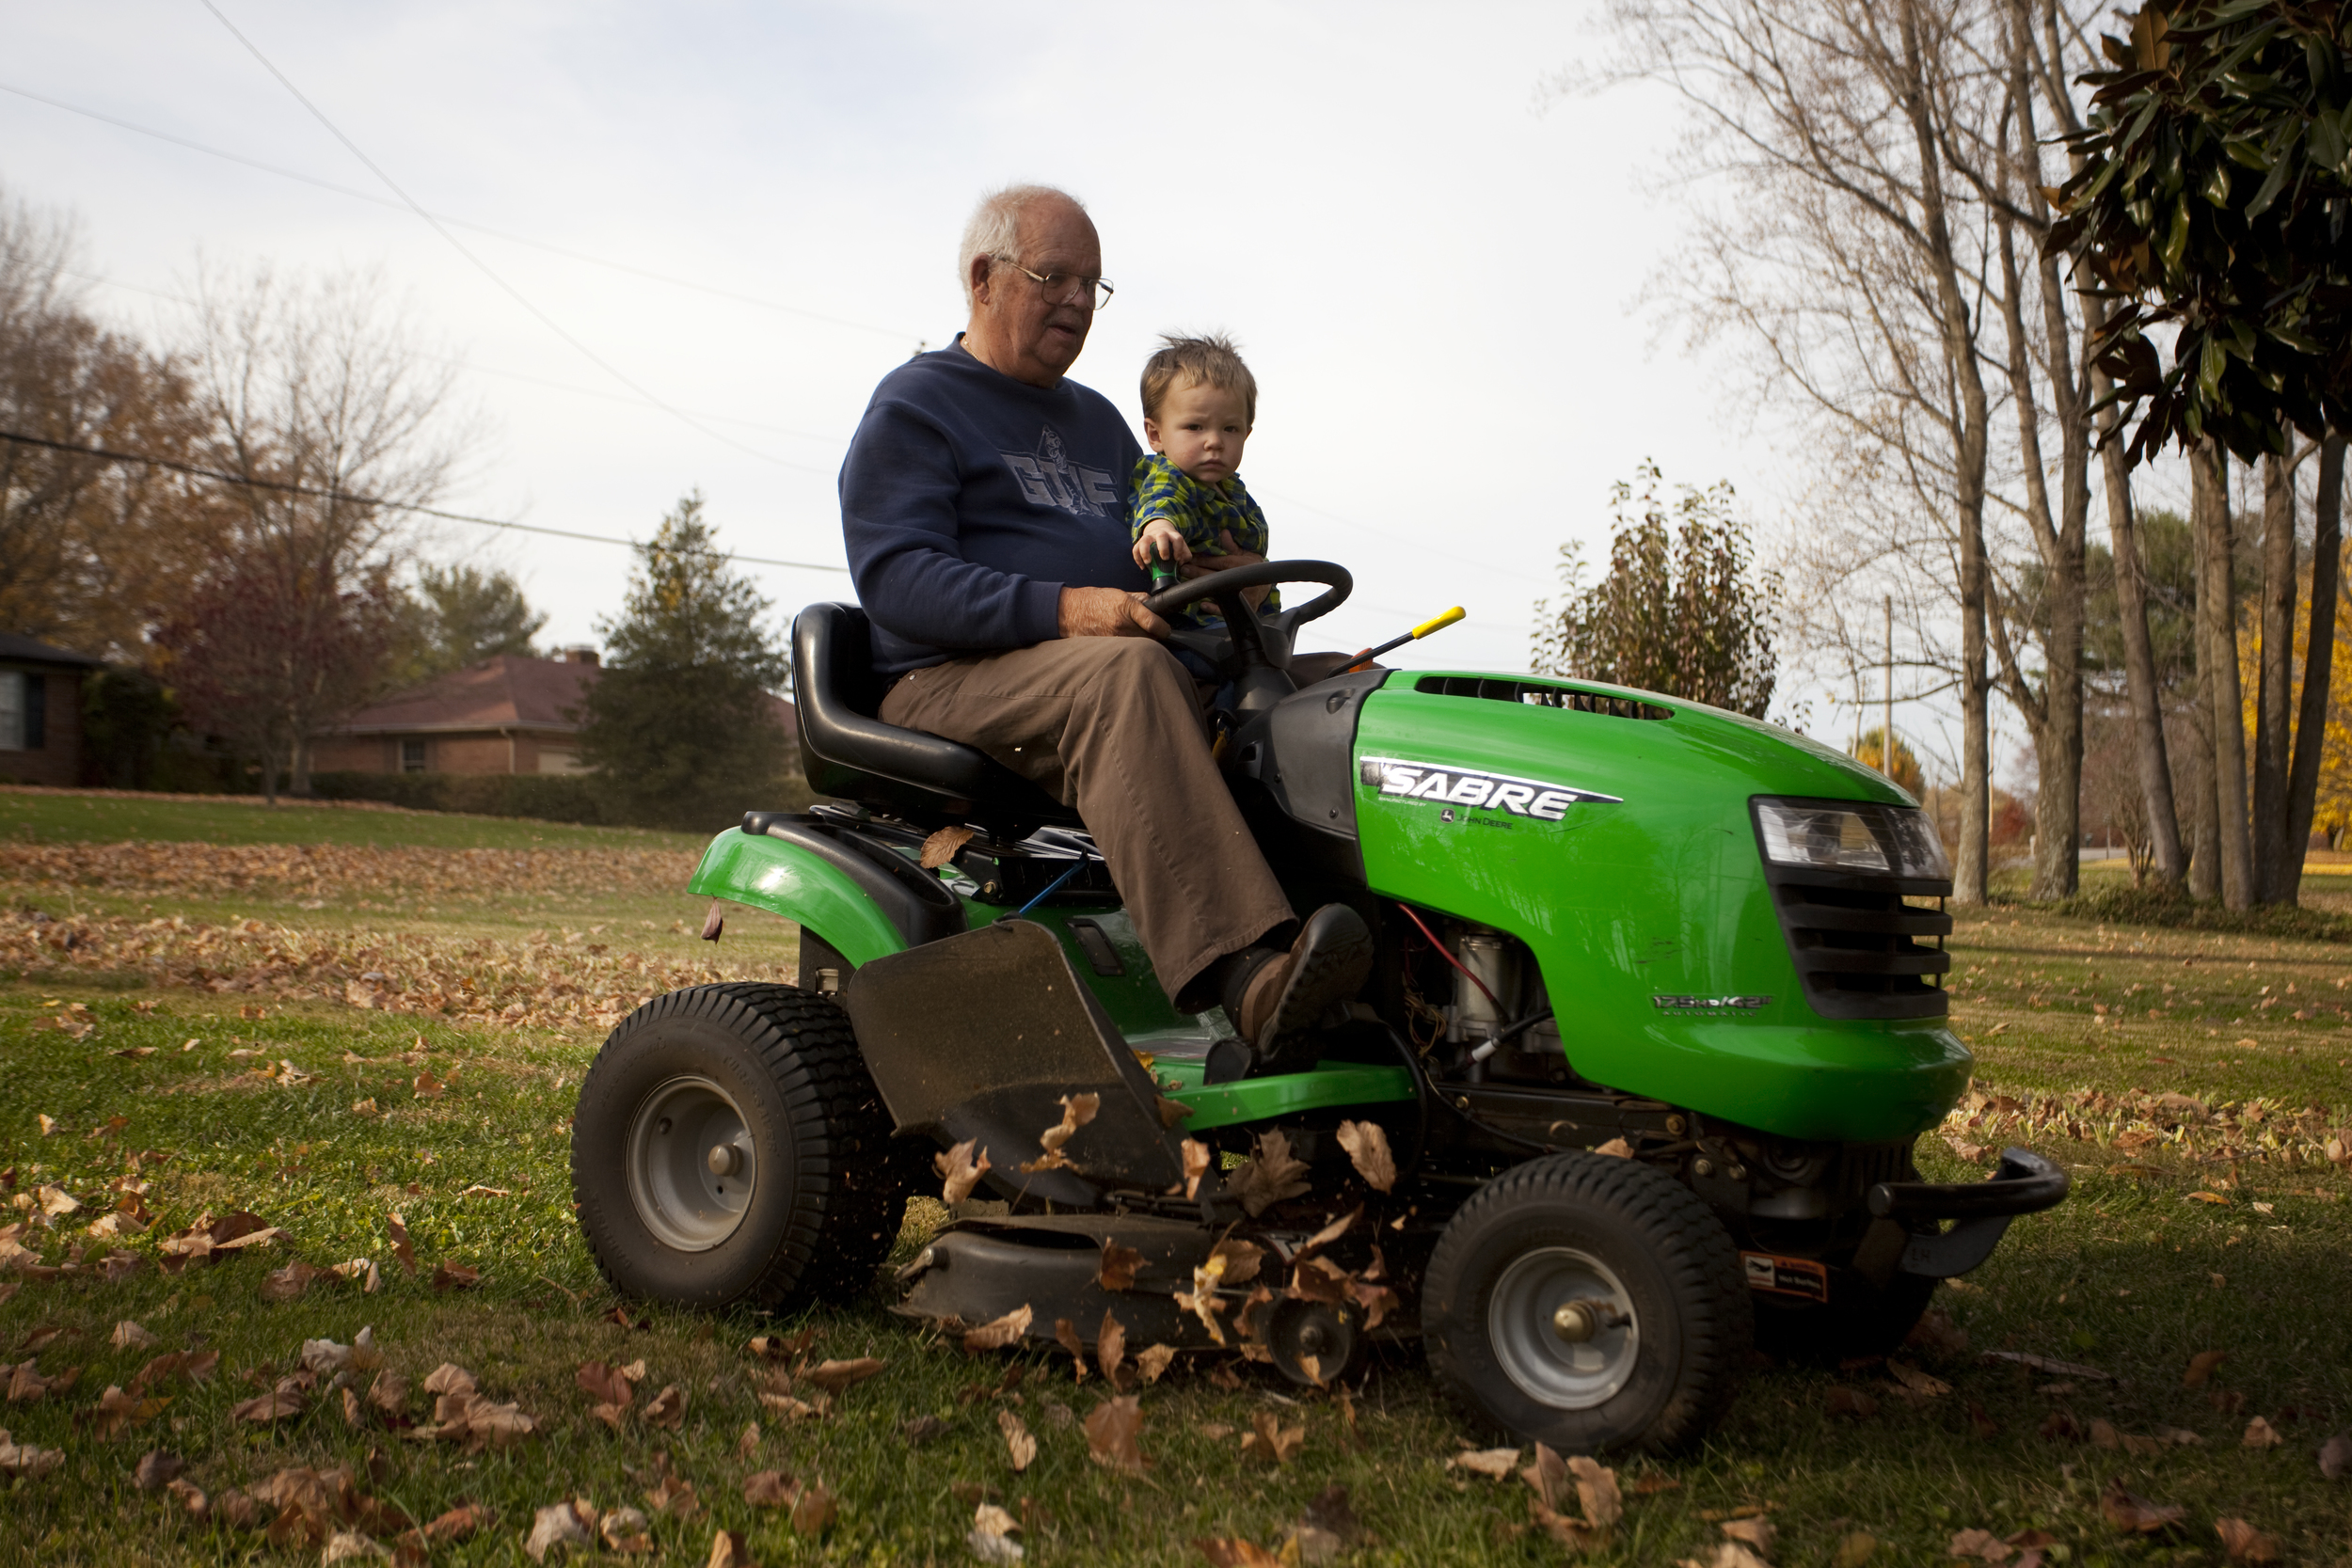 """Larry Raymer, of Bowling Green, Ky., enjoys spending time with his great grandson, 2-year-old Bryson, """"He's my boy,"""" said Raymer."""